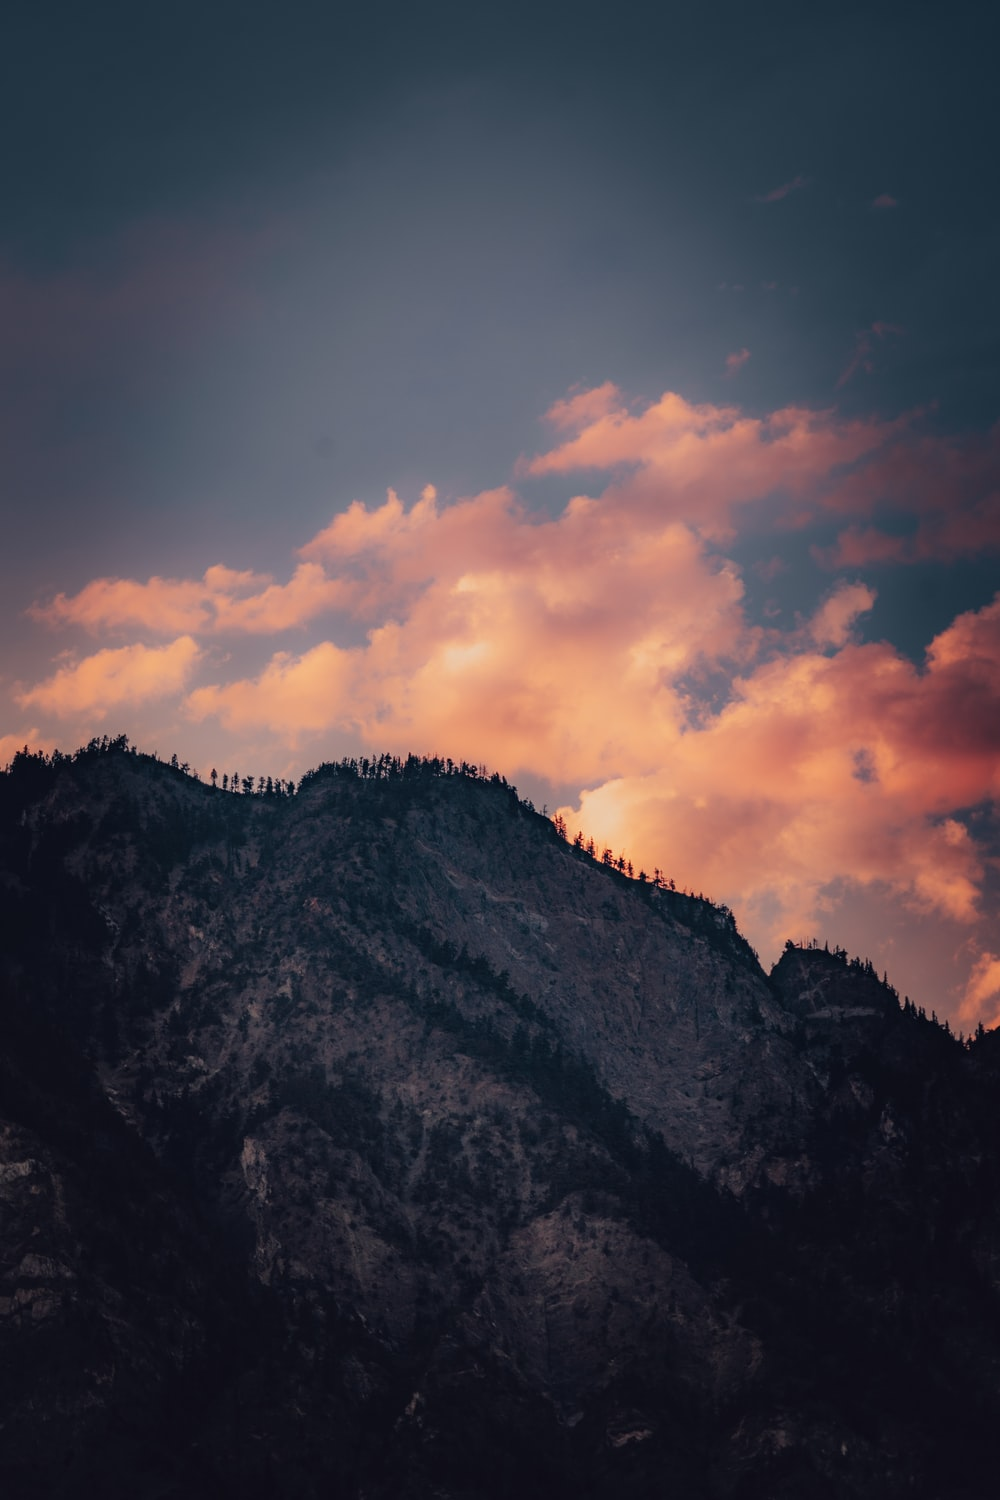 green and brown mountain under cloudy sky during sunset